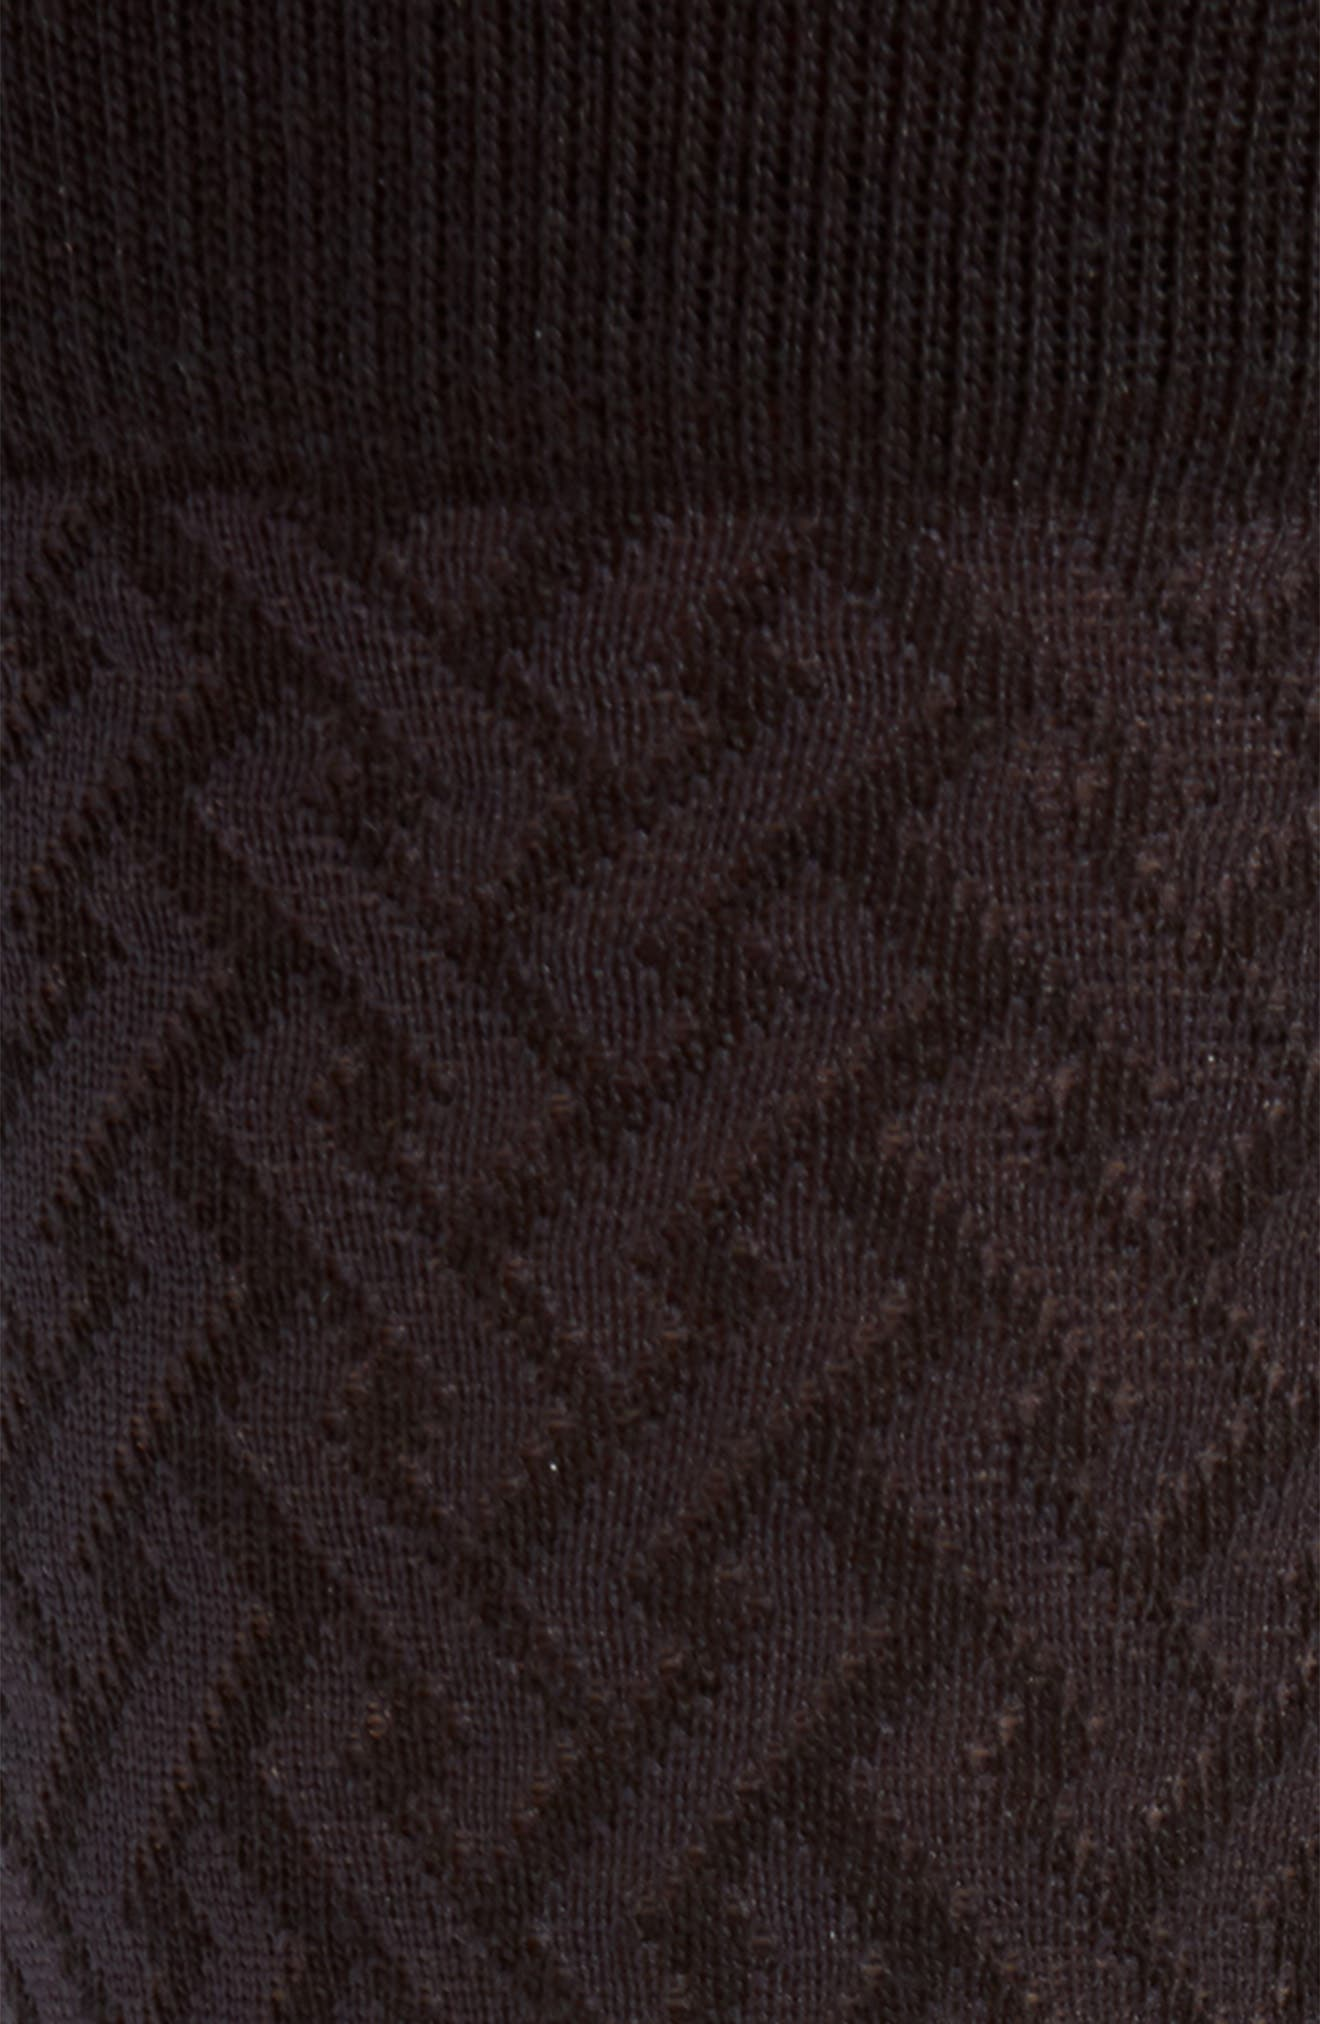 Intertwined Lines Socks,                             Alternate thumbnail 2, color,                             001